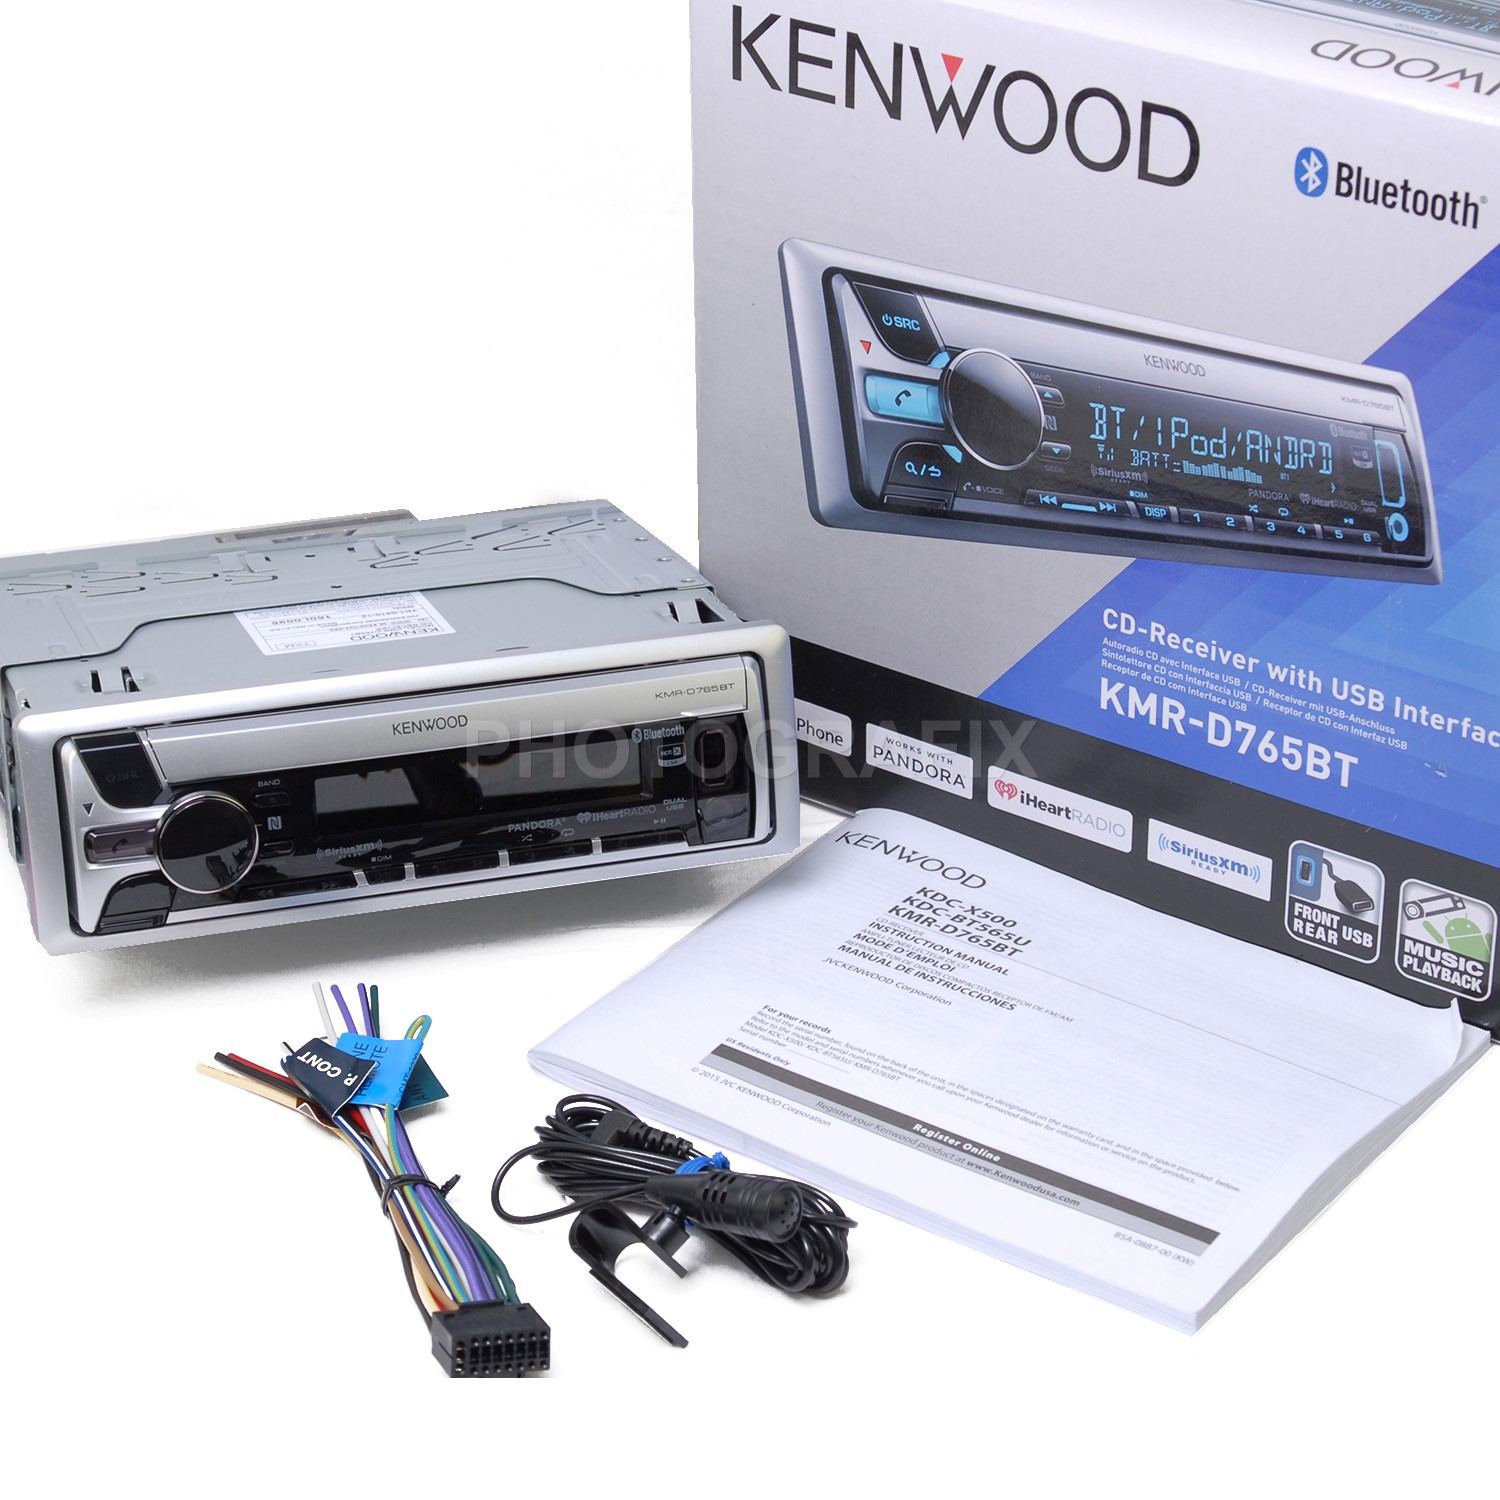 tips for installing a stereo system in your boat kenwood kmr d765bt marine boat stereo cd receiver bluetooth replaced kmr d562bt